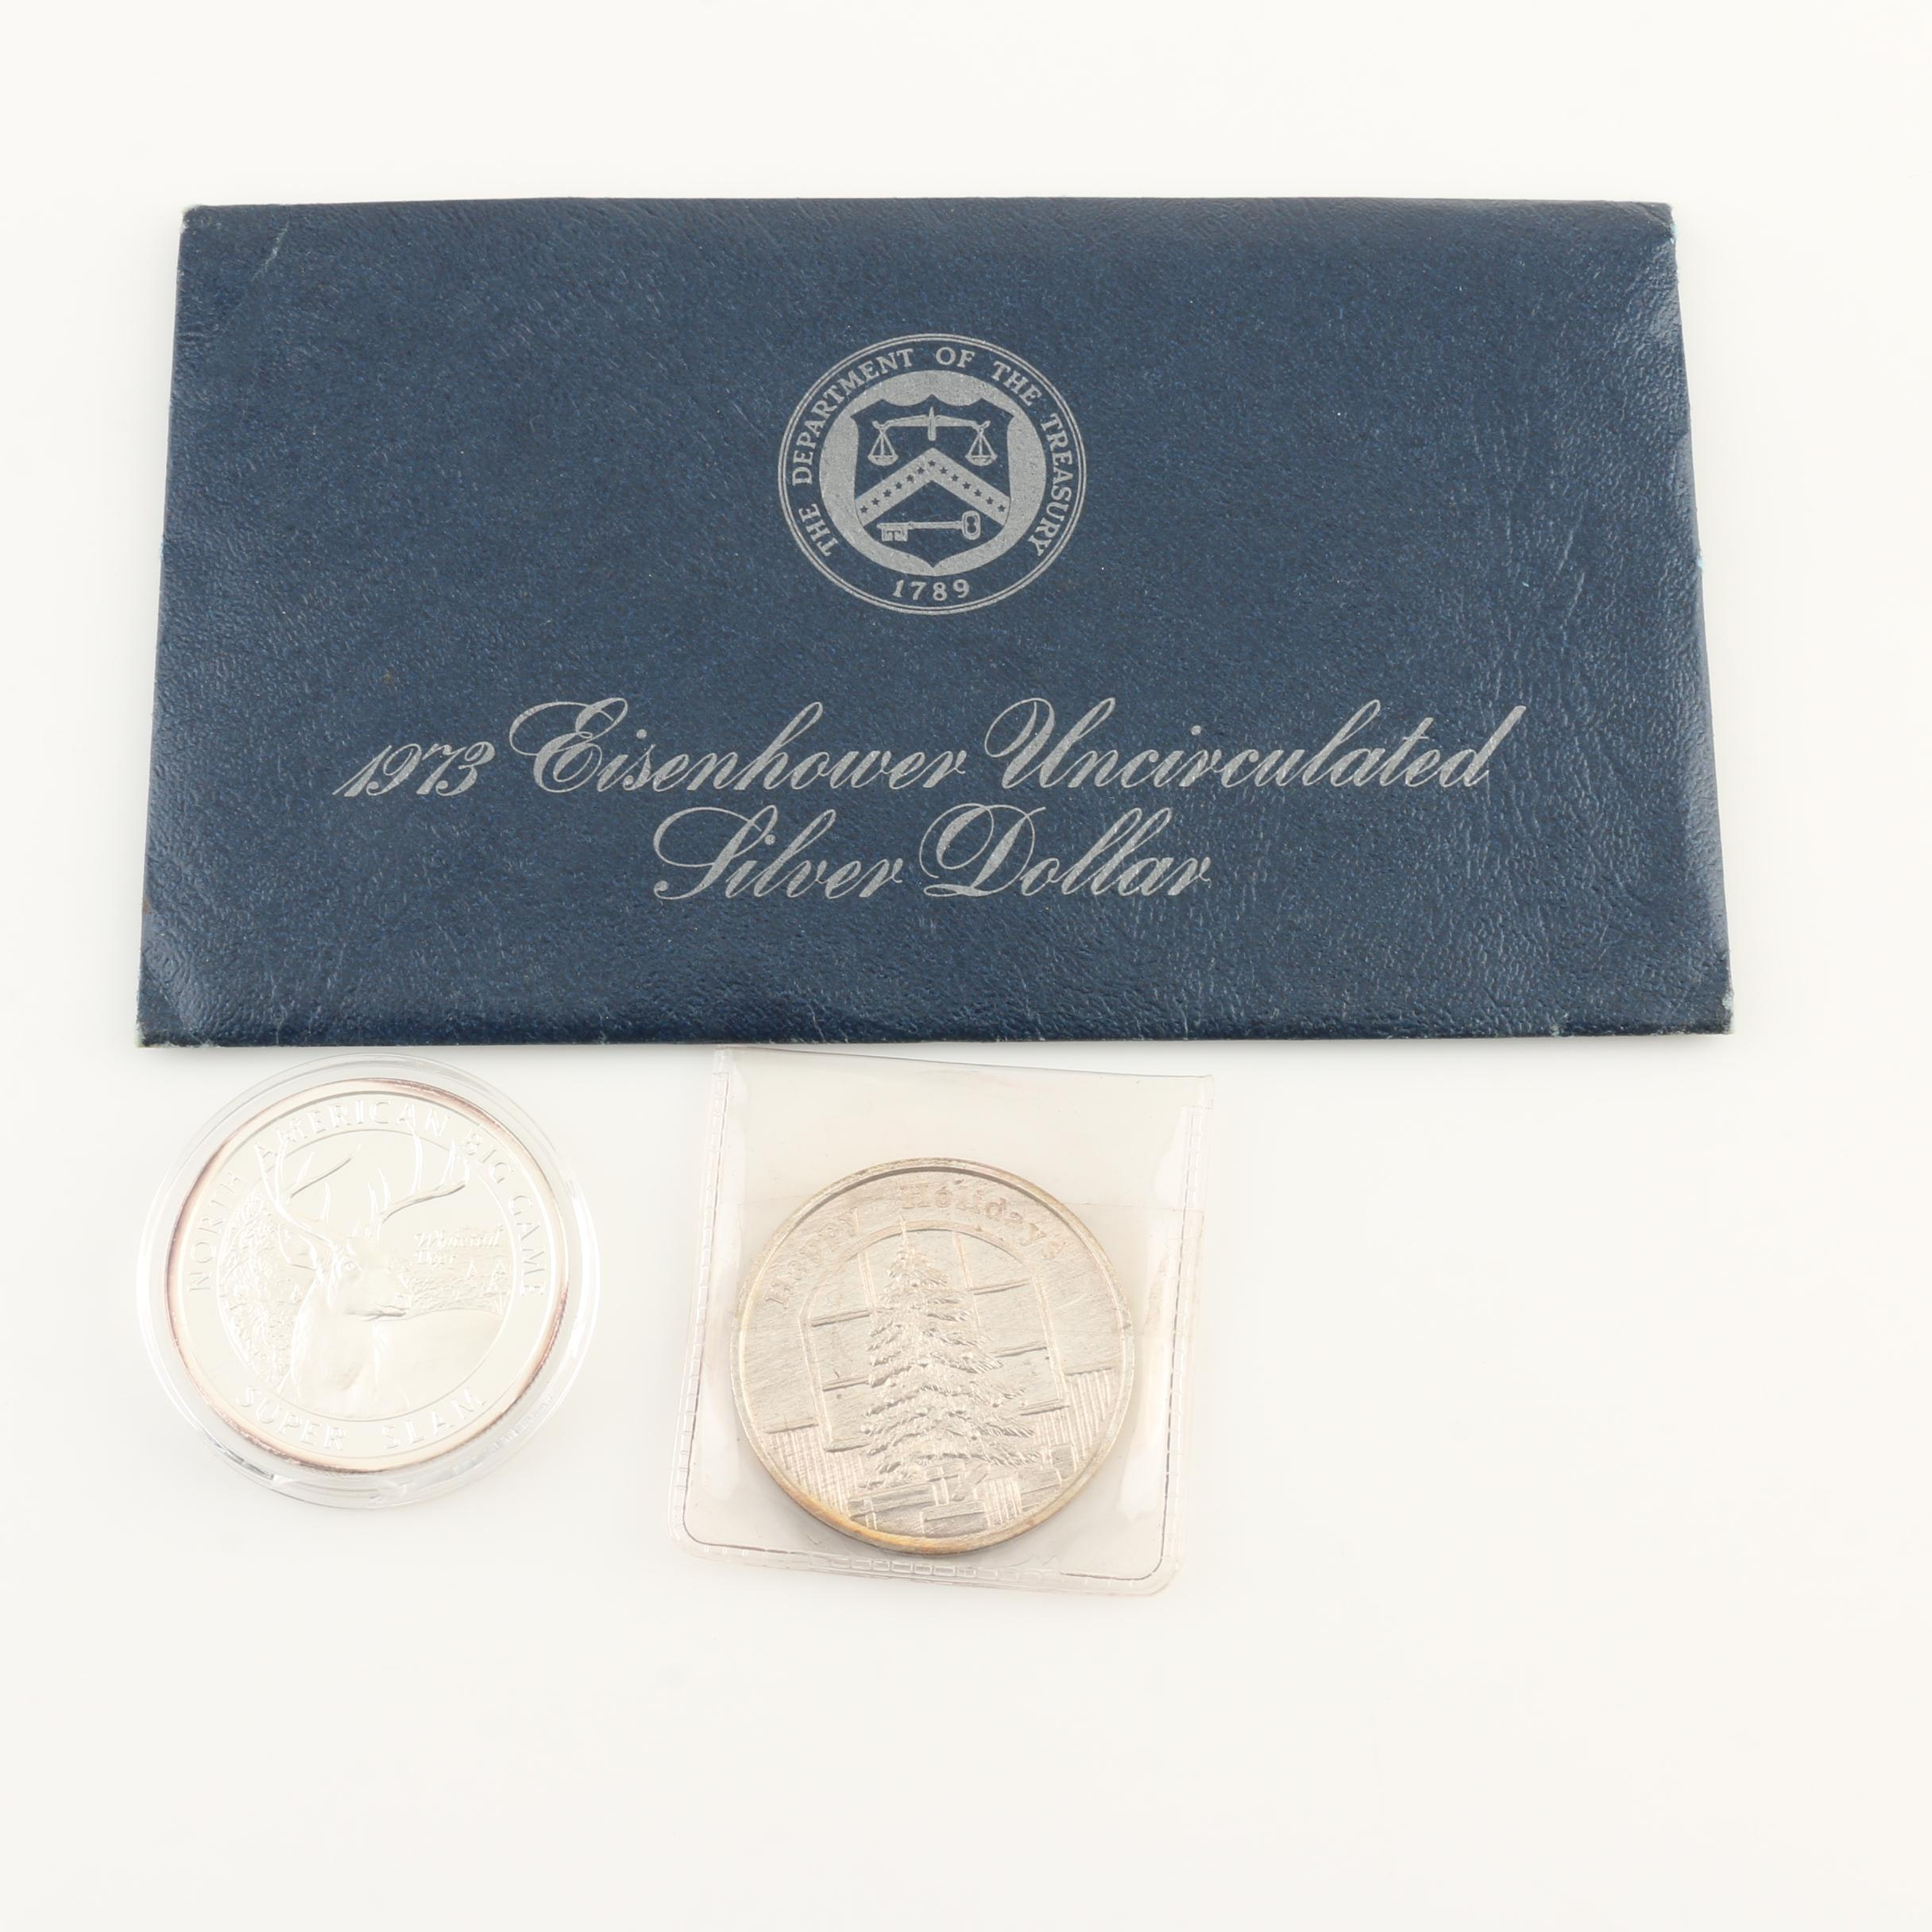 1973-S Eisenhower Uncirculated Silver Dollar and Two 1 Ounce Silver Rounds